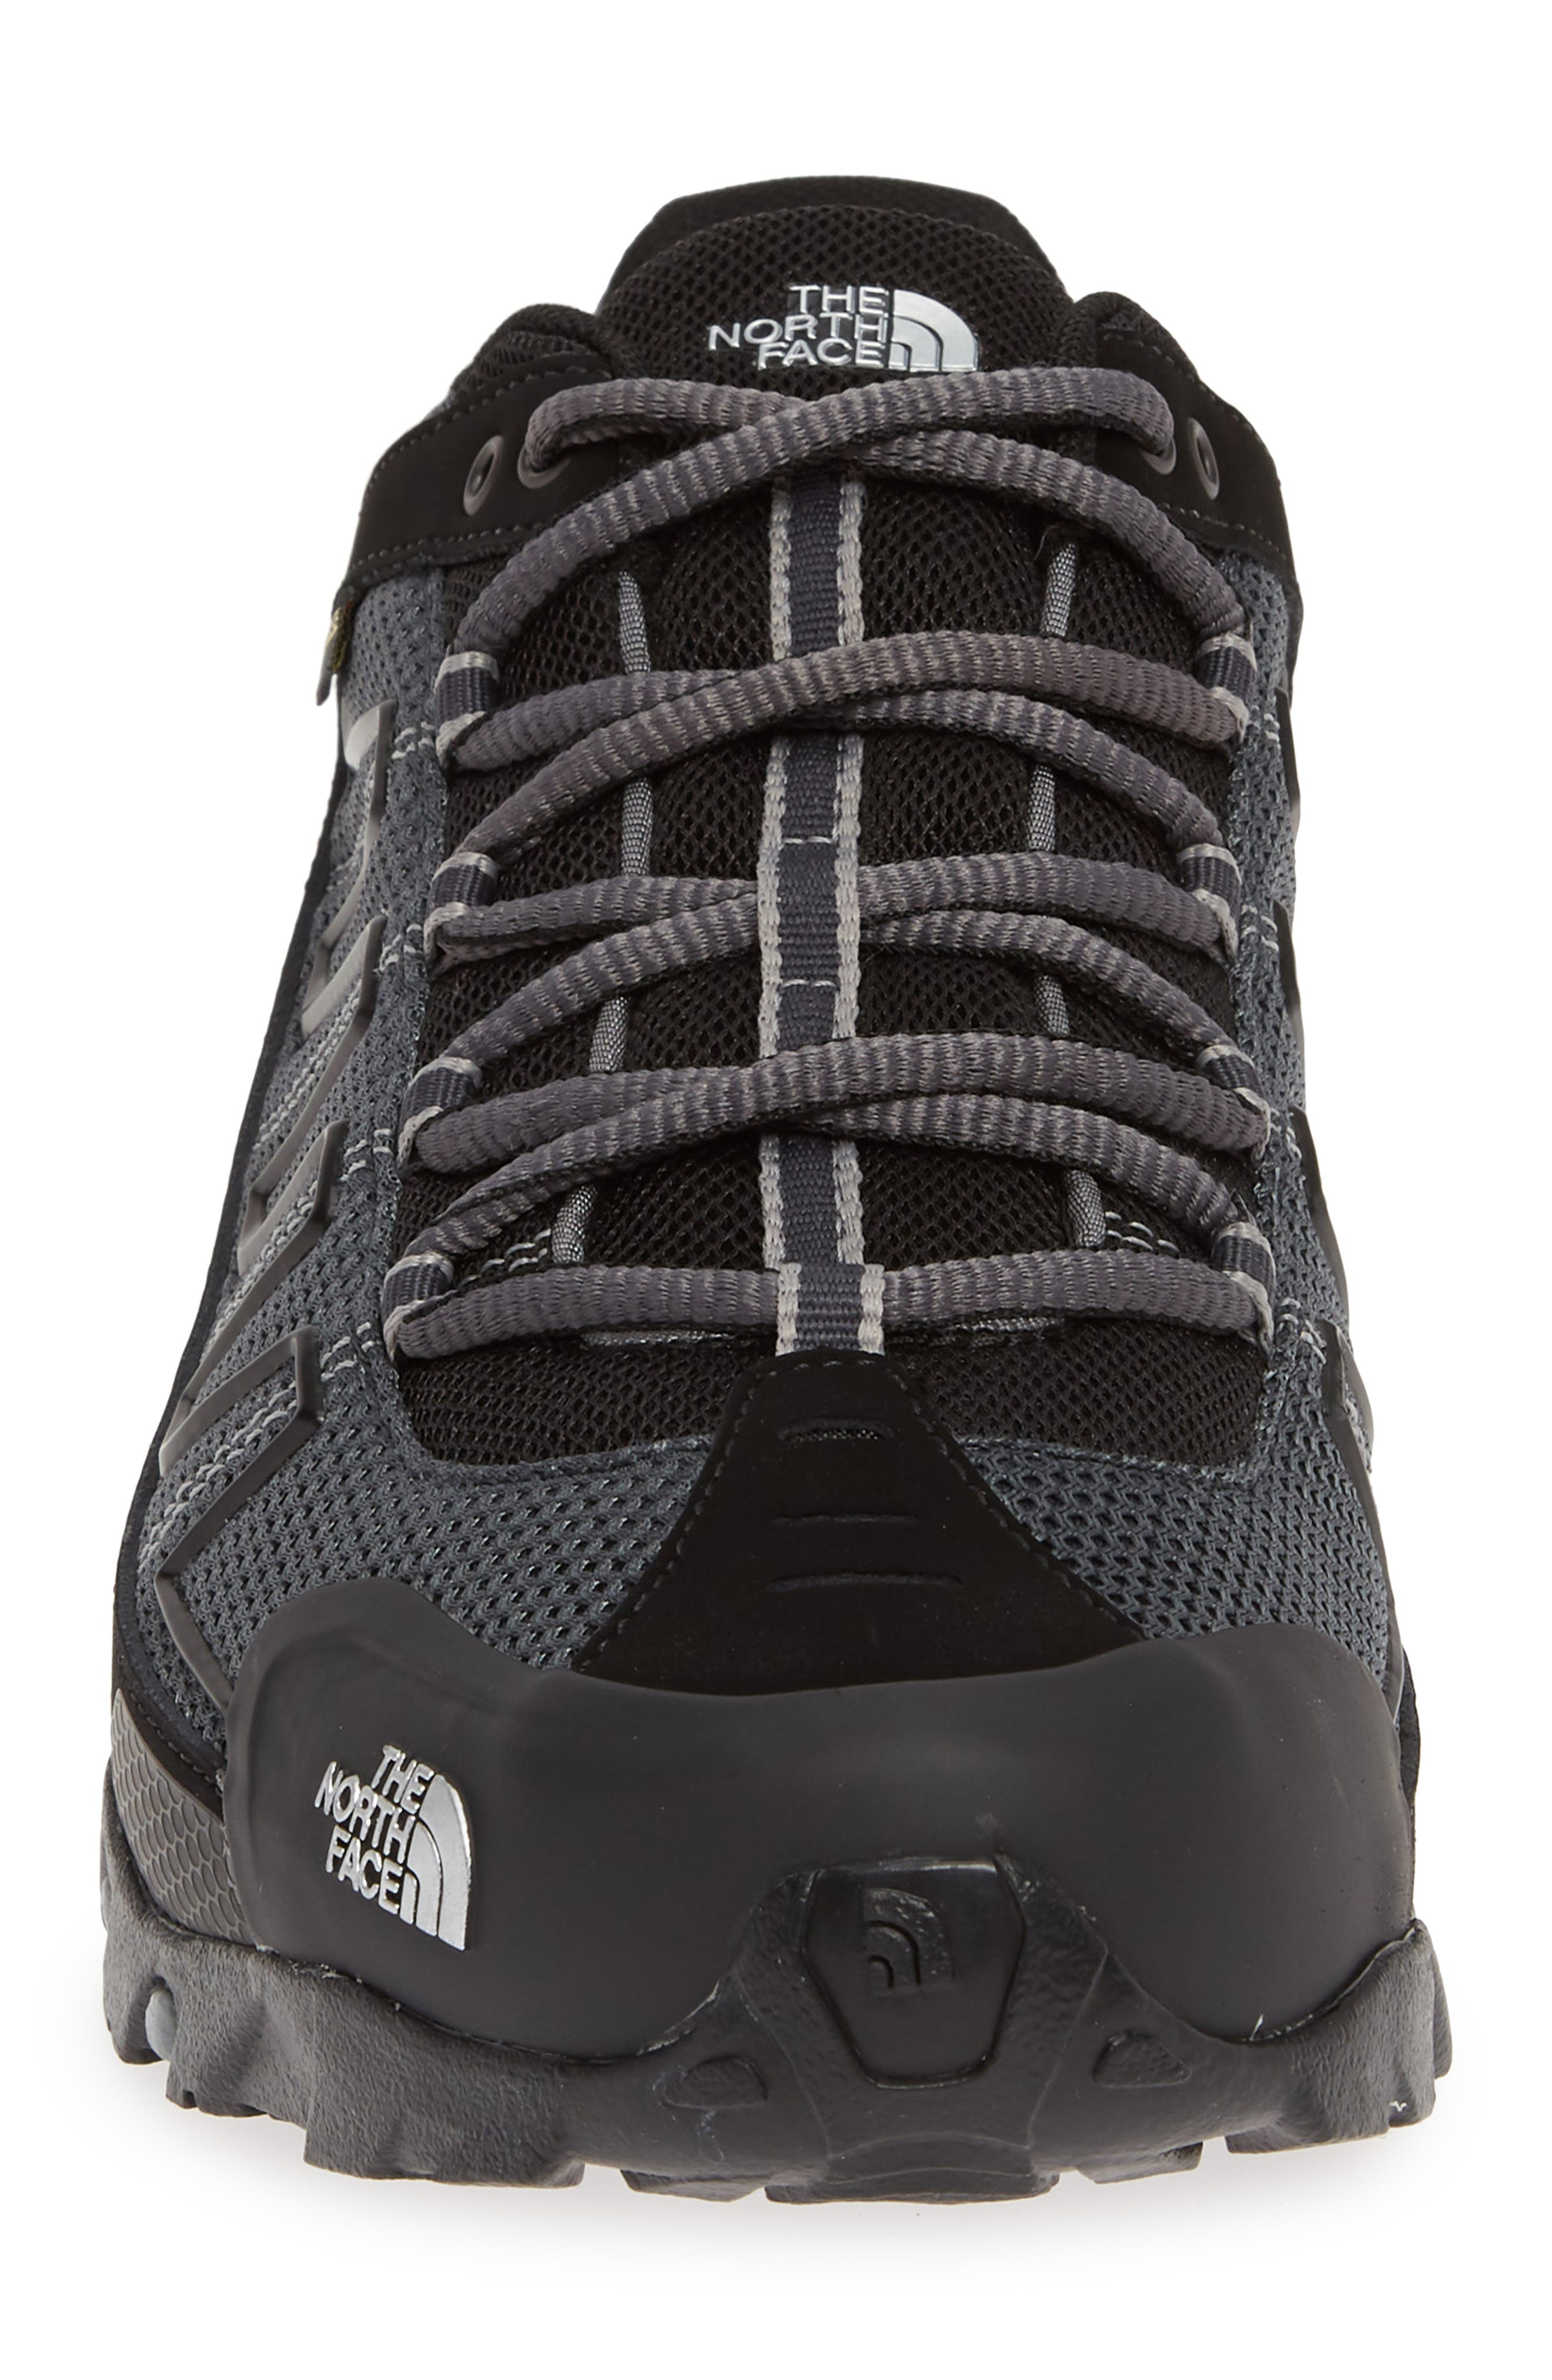 THE NORTH FACE, 'Ultra 109 GTX' Waterproof Running Shoe, Alternate thumbnail 4, color, BLACK/ GREY